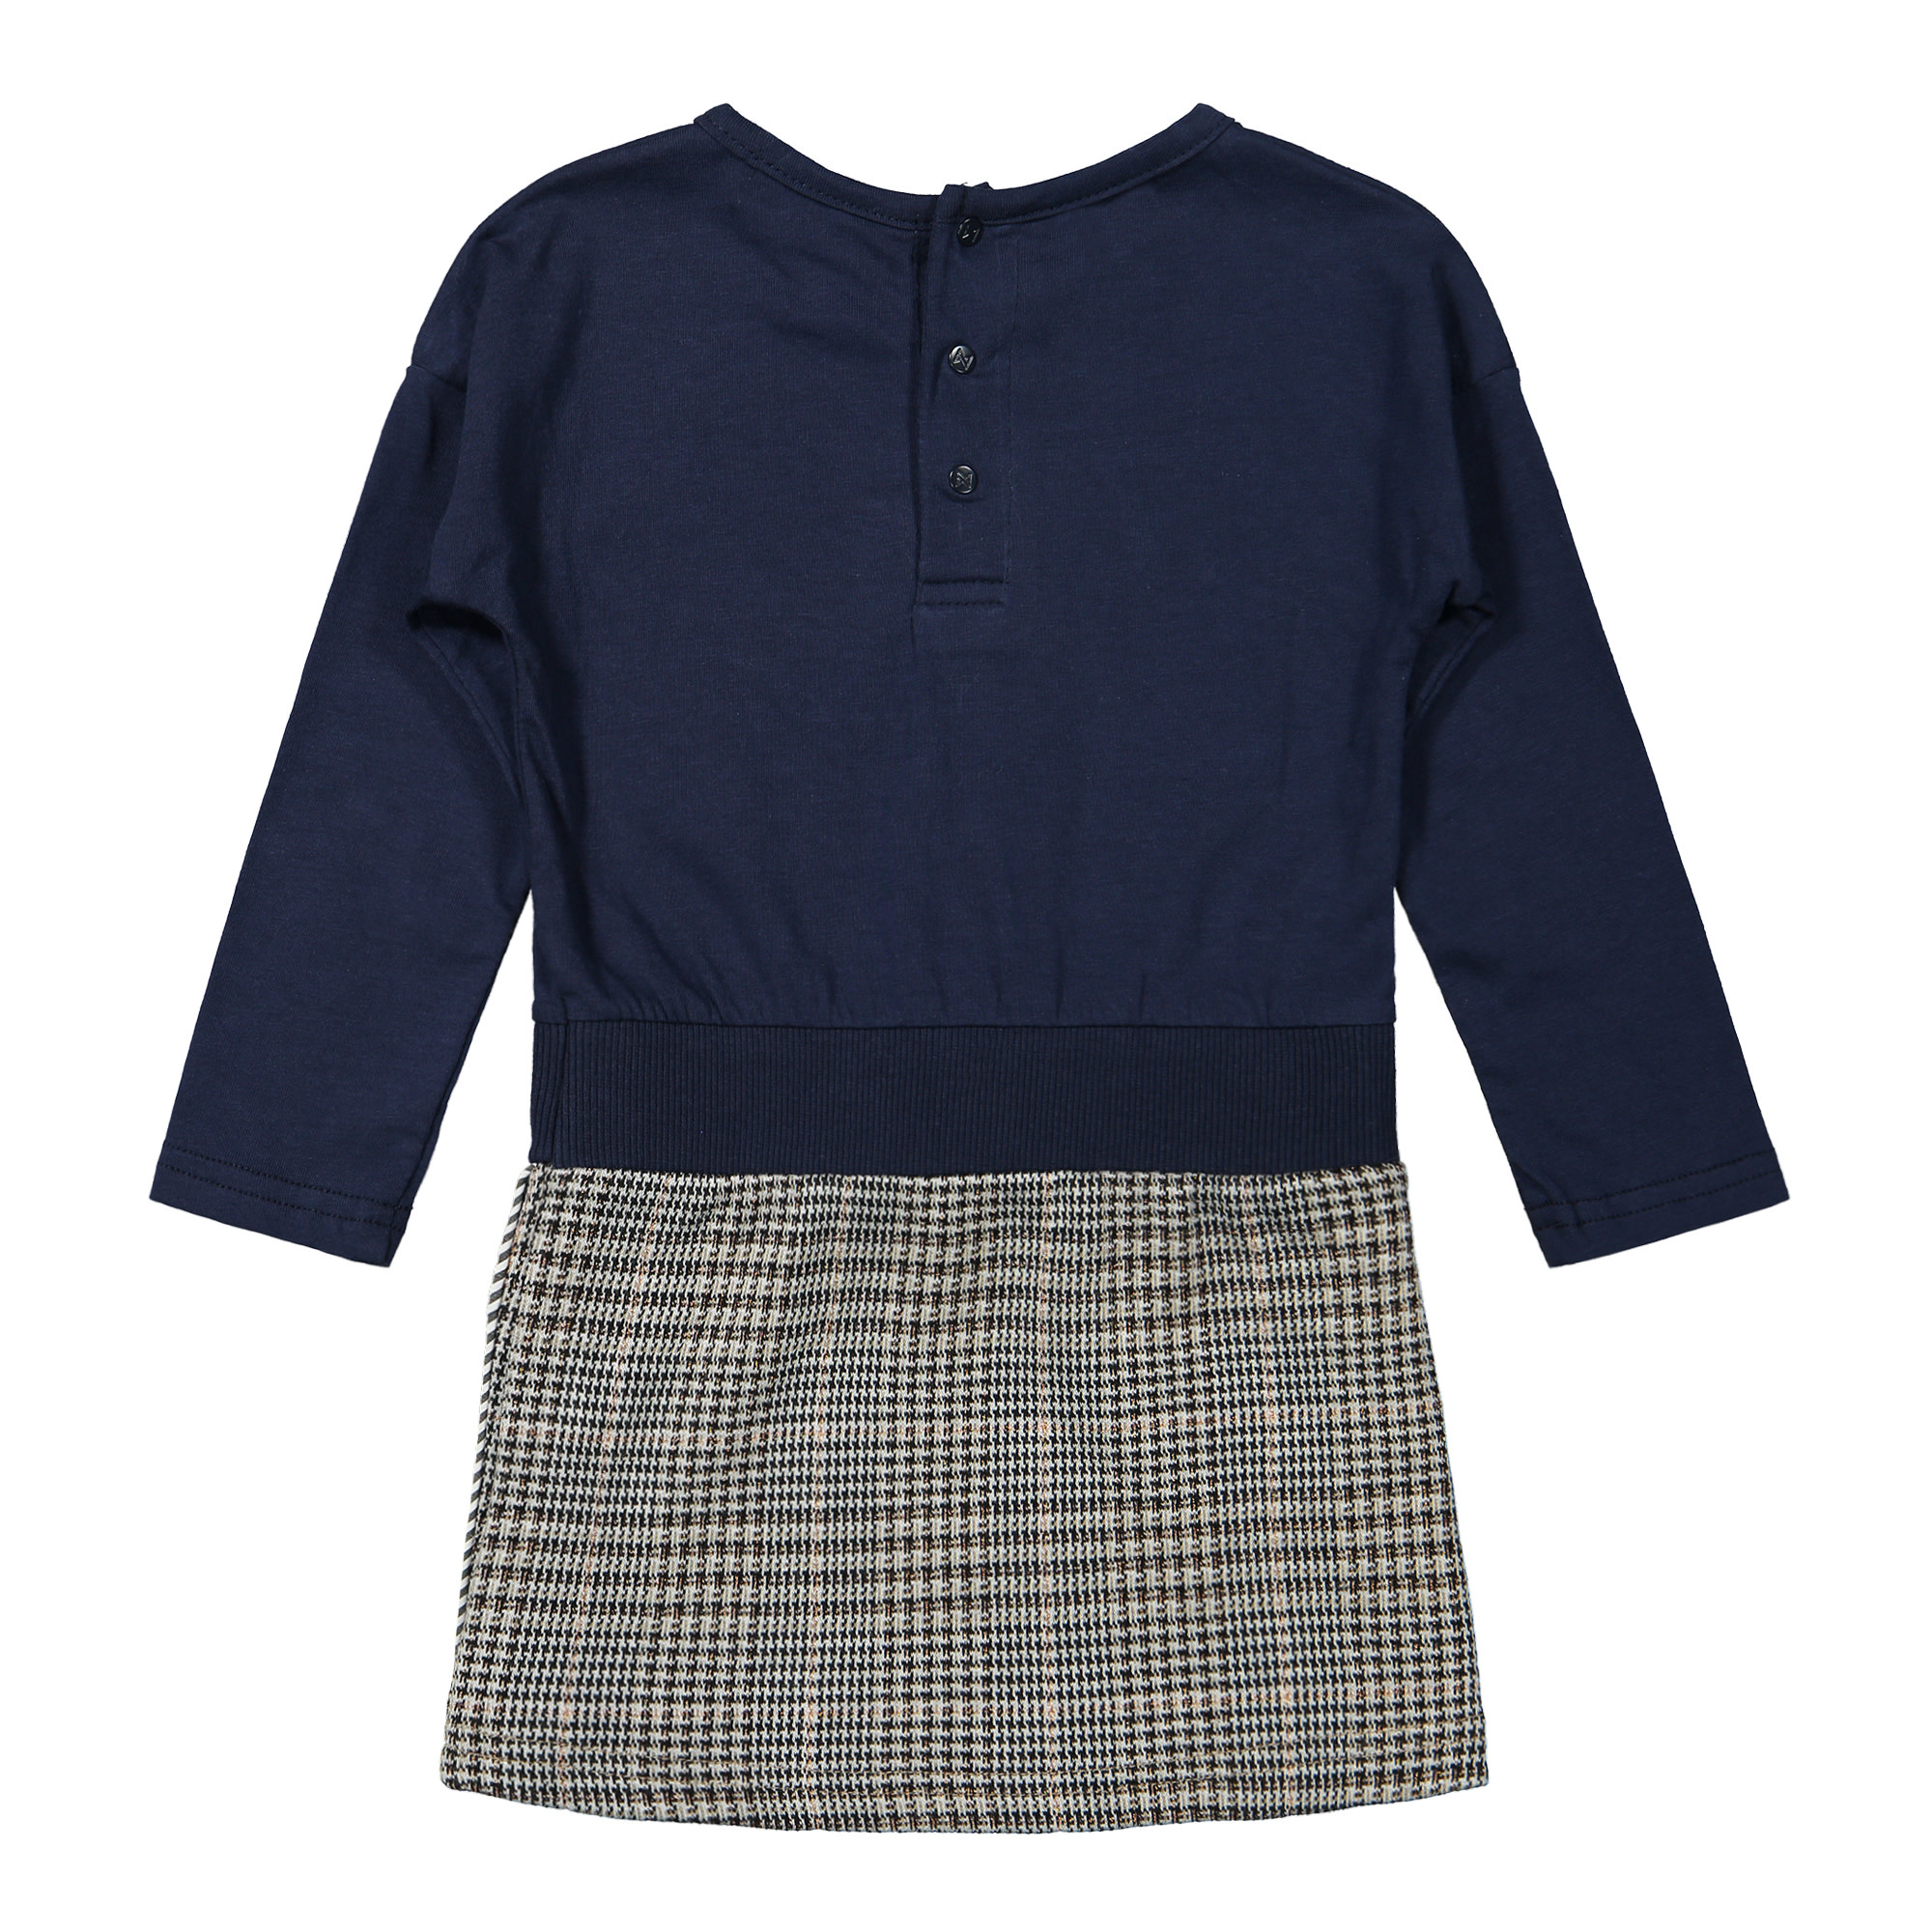 Branded Dress with Houndstooth Skirt